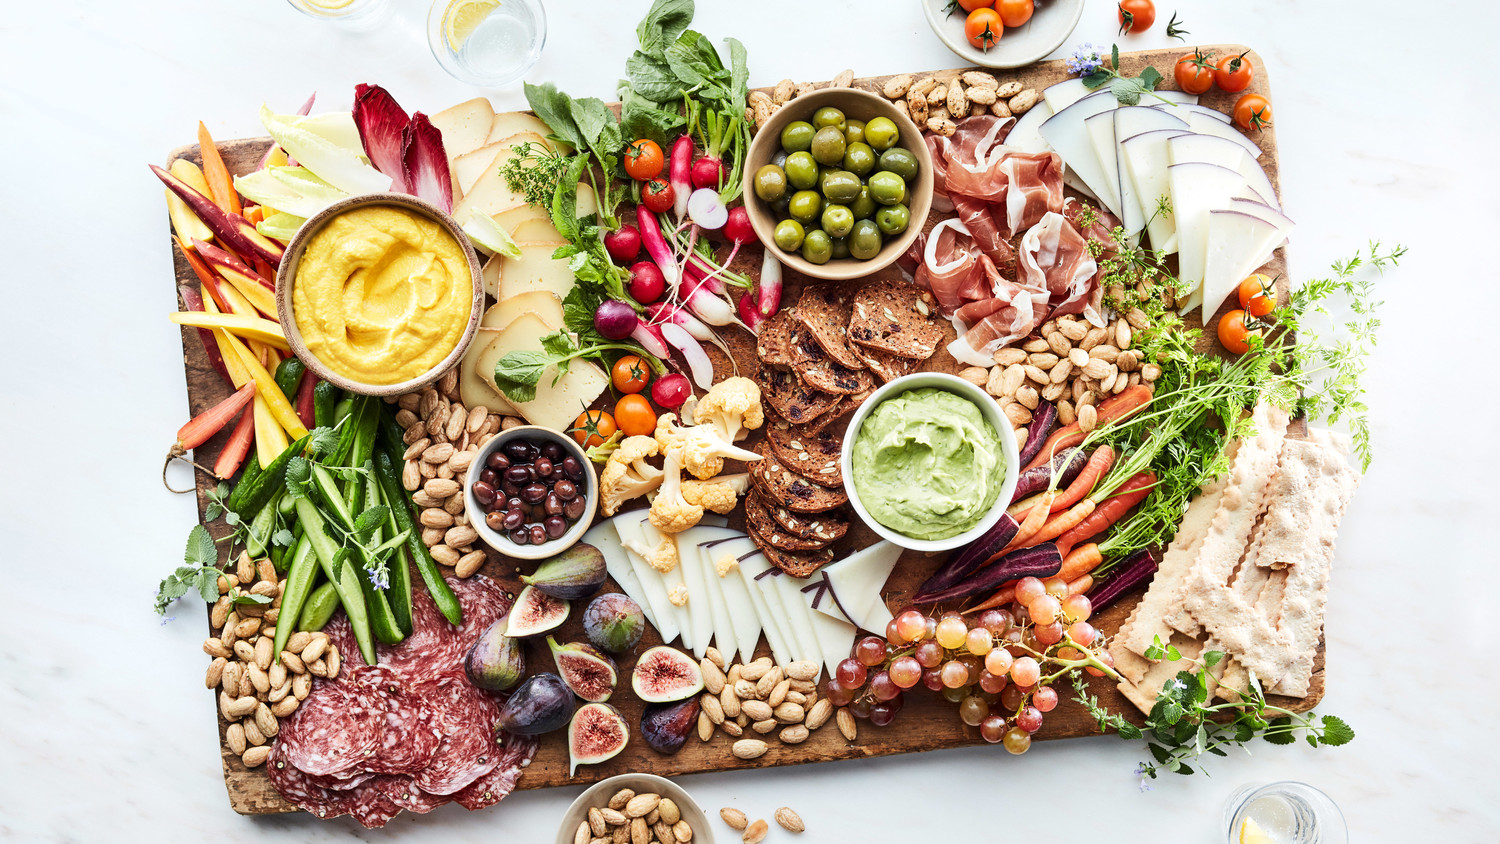 Backyard Halloween Ideas : A summer grazing board is the ultimate snacking experience